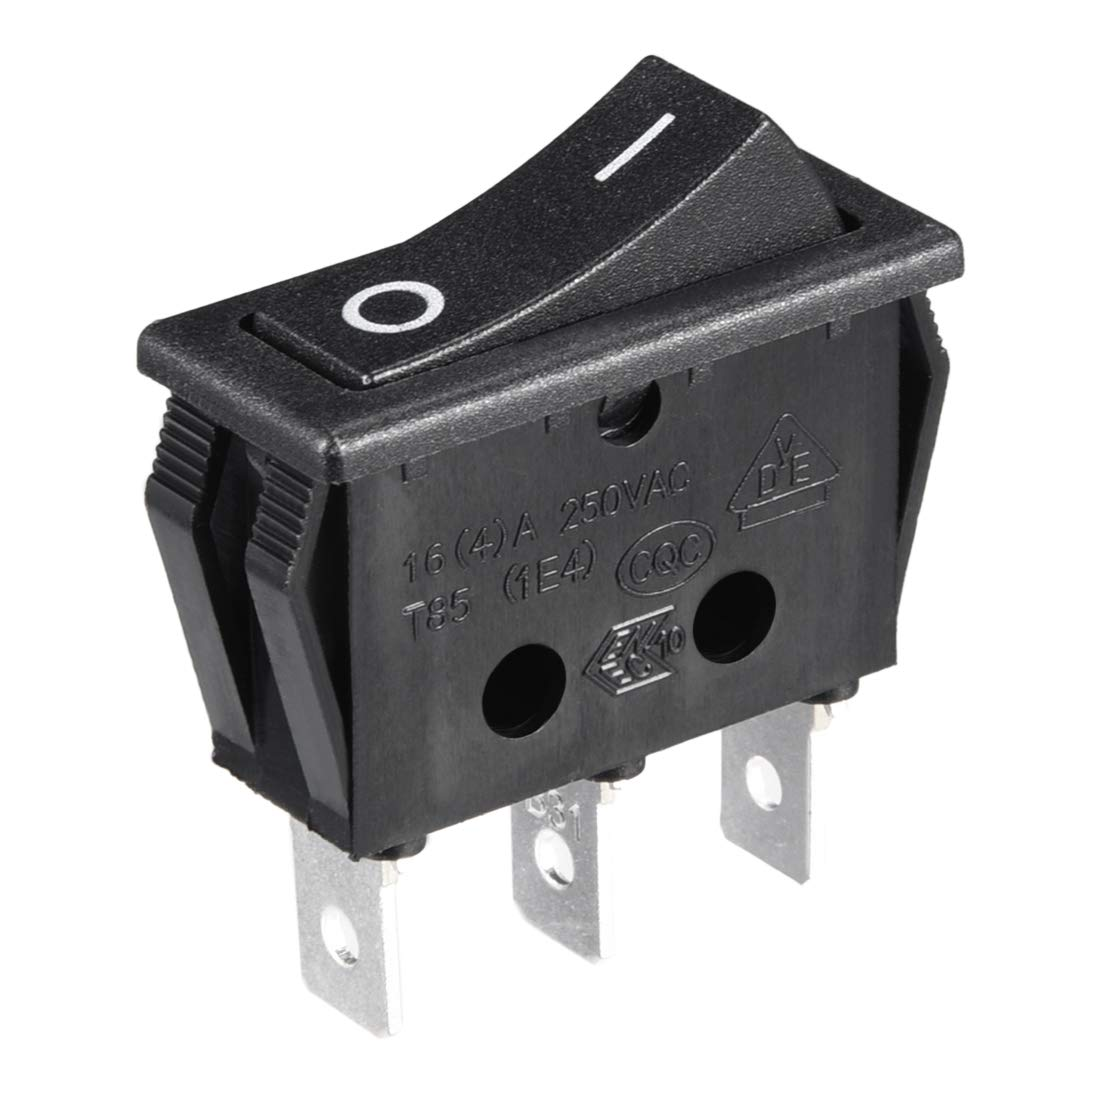 uxcell 5Pcs AC 20A//125V 22A//250V On Off SPST Switch 3 Pins 2 Position Green LED Light Boat Rocker Switches